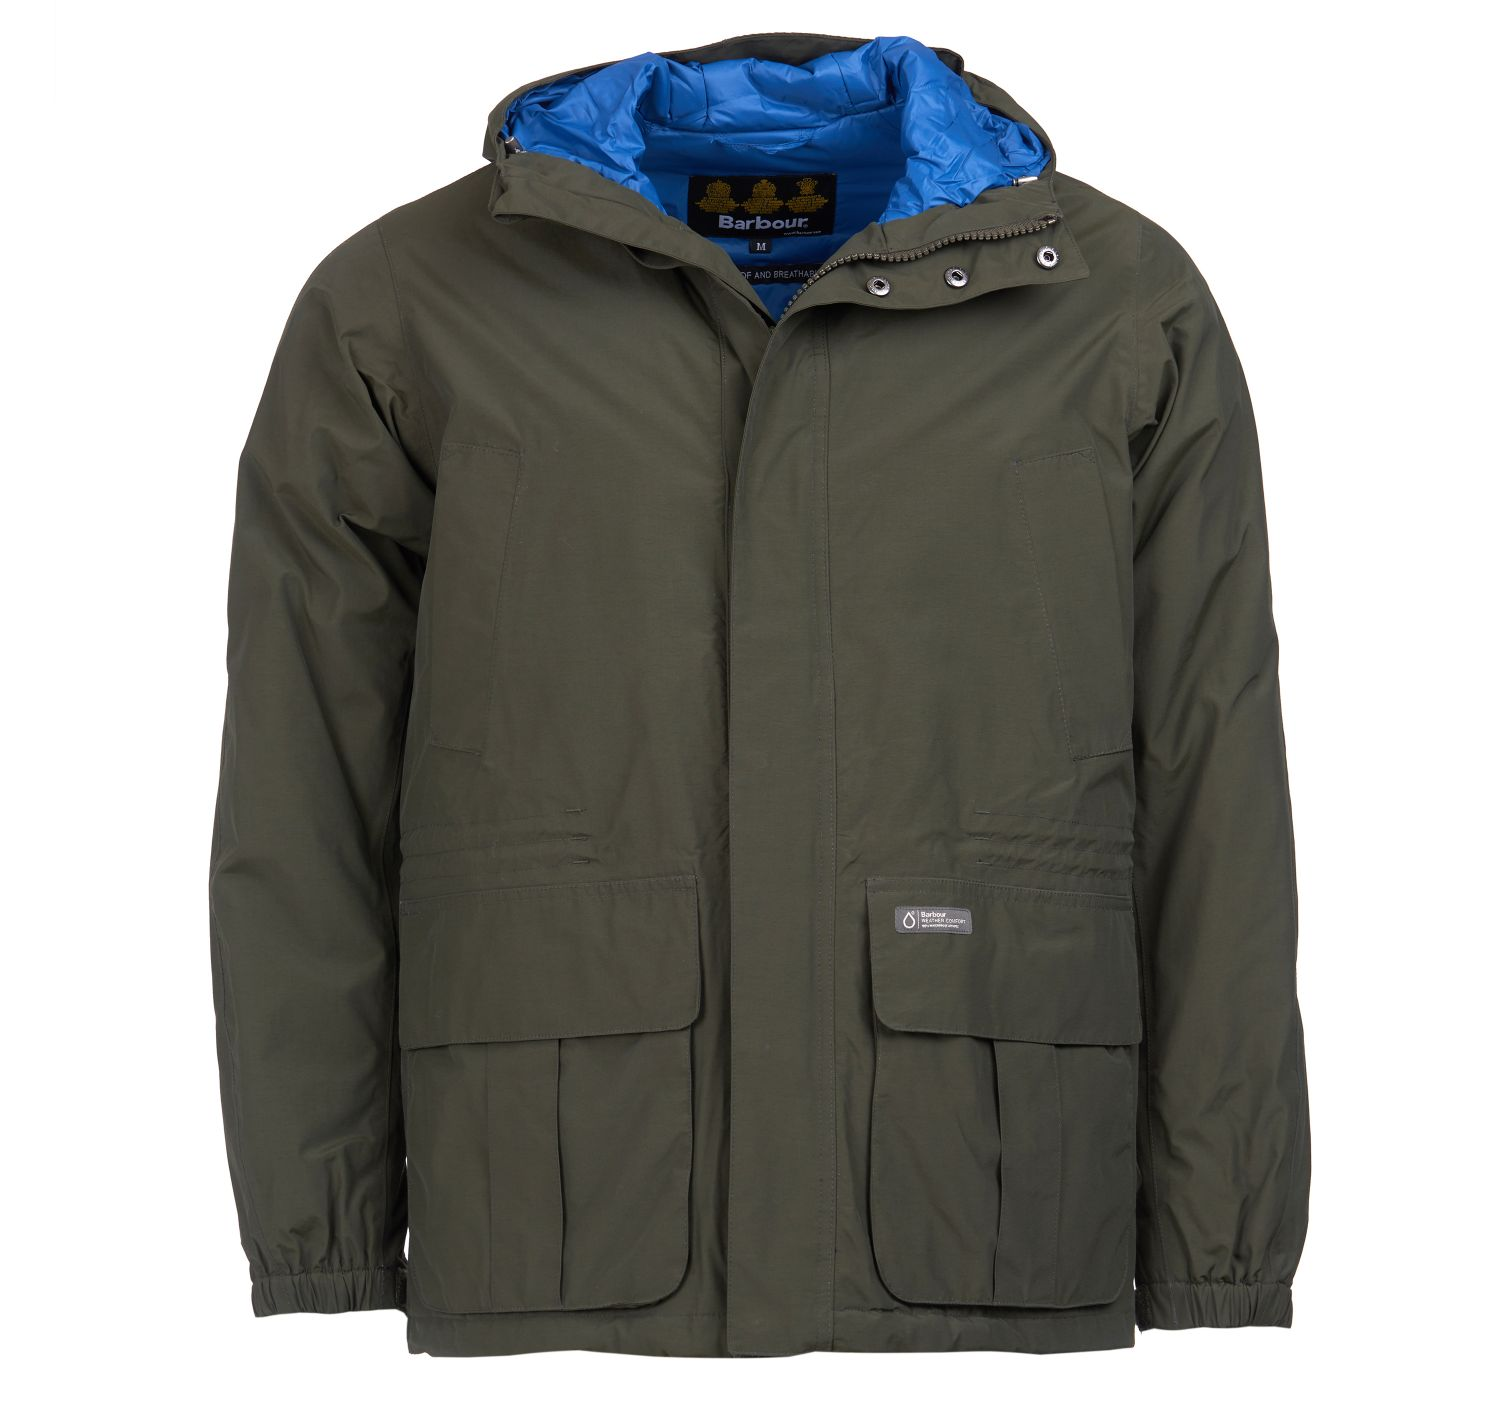 Barbour Ashton Waterproof Breathable Jacket Olive